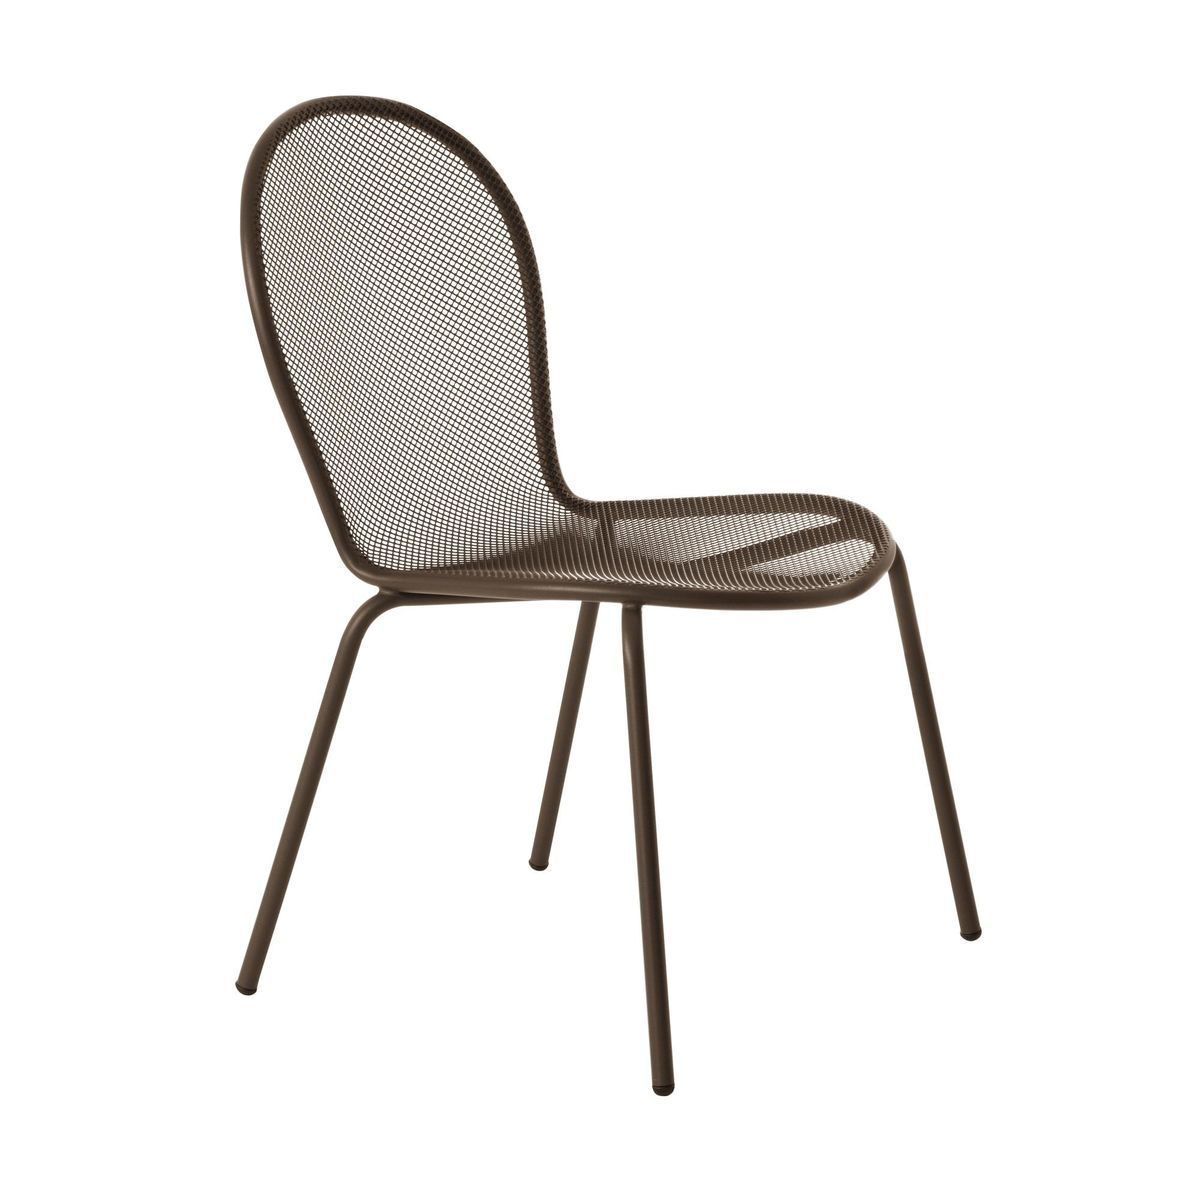 steel chair buyers in india industrial style dining chairs ronda emu ambientedirect